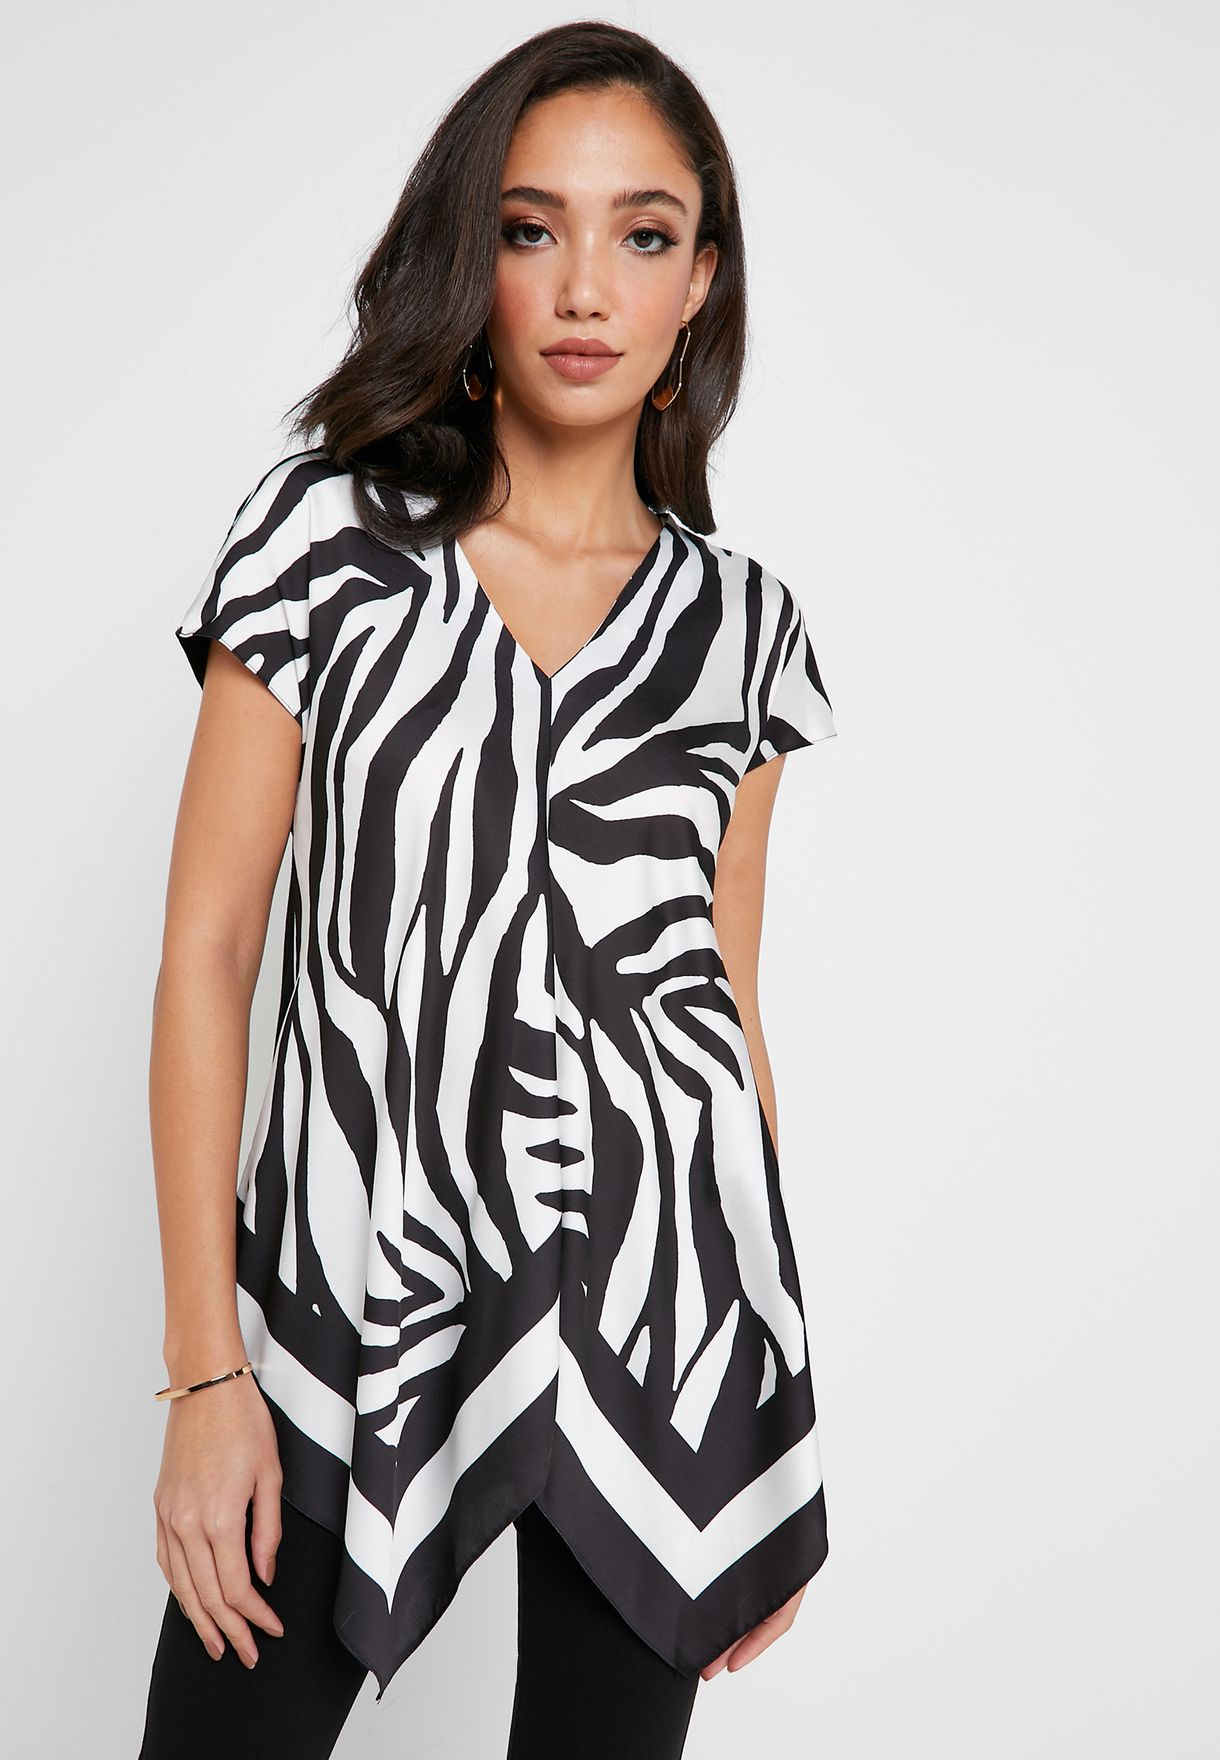 Asymmetric Zebra Print Top